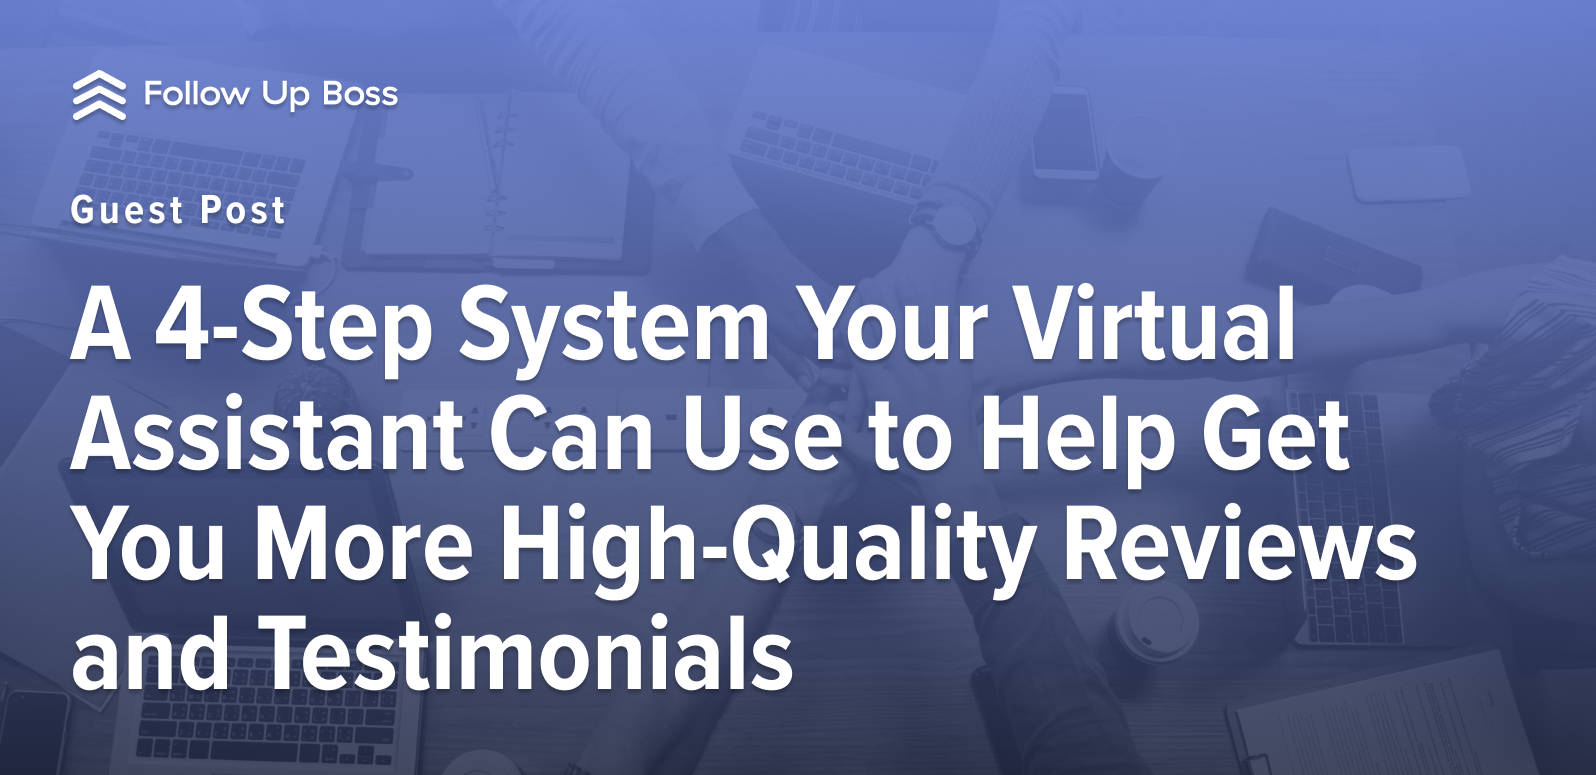 A 4-Step System Your Virtual Assistant Can Use to Help Get You More High-Quality Reviews and Testimonials